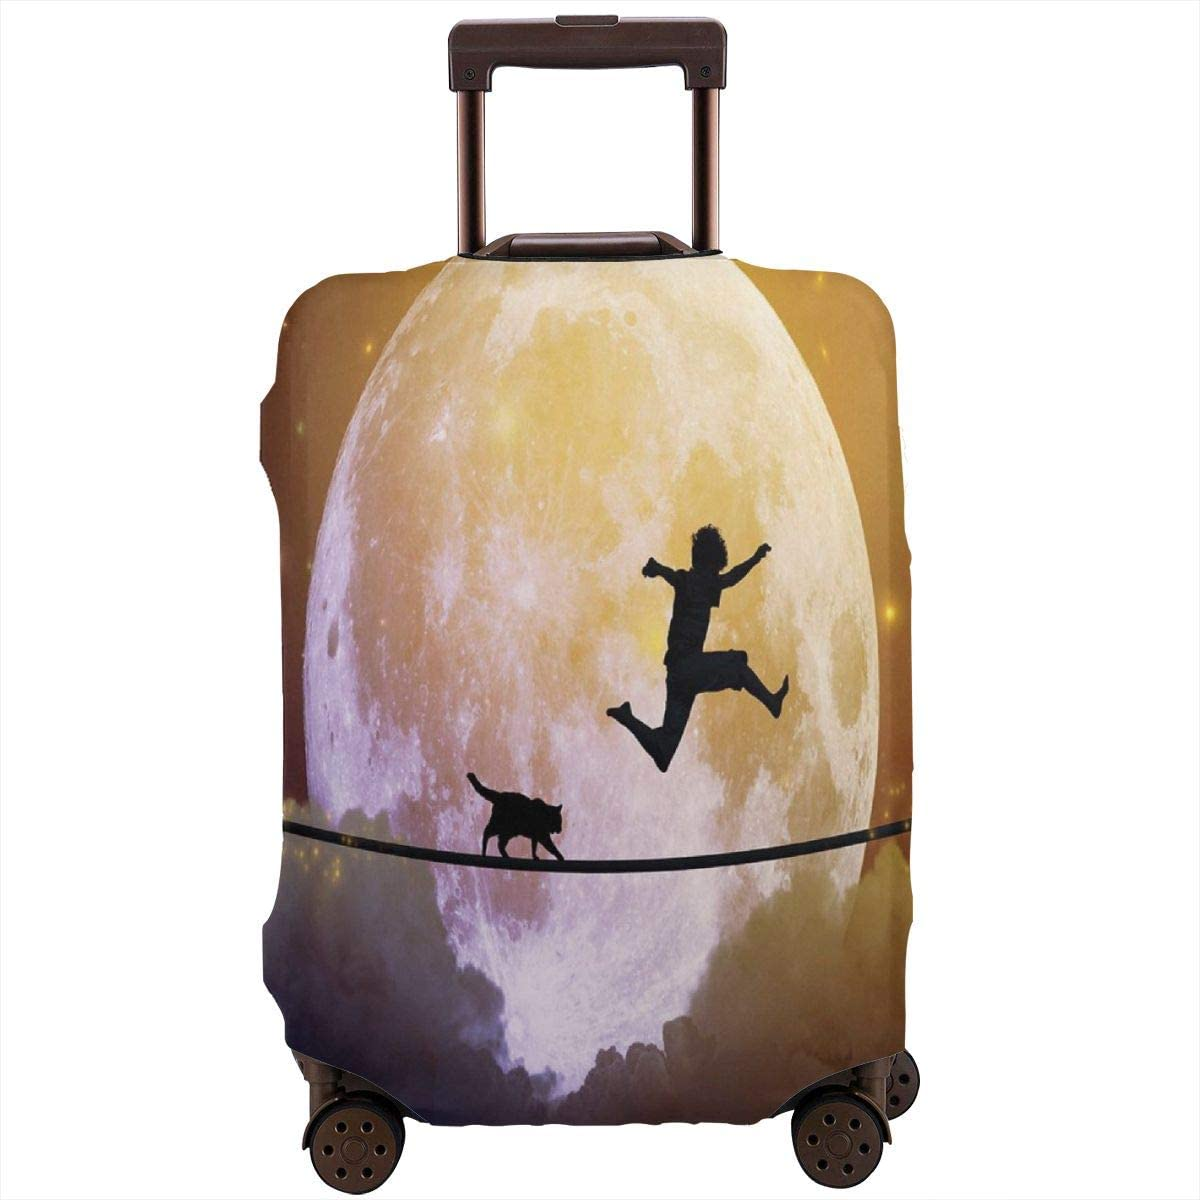 Luggage Cover Adventure Boy Cat Full Moon Protective Travel Trunk Case Elastic Luggage Suitcase Protector Cover